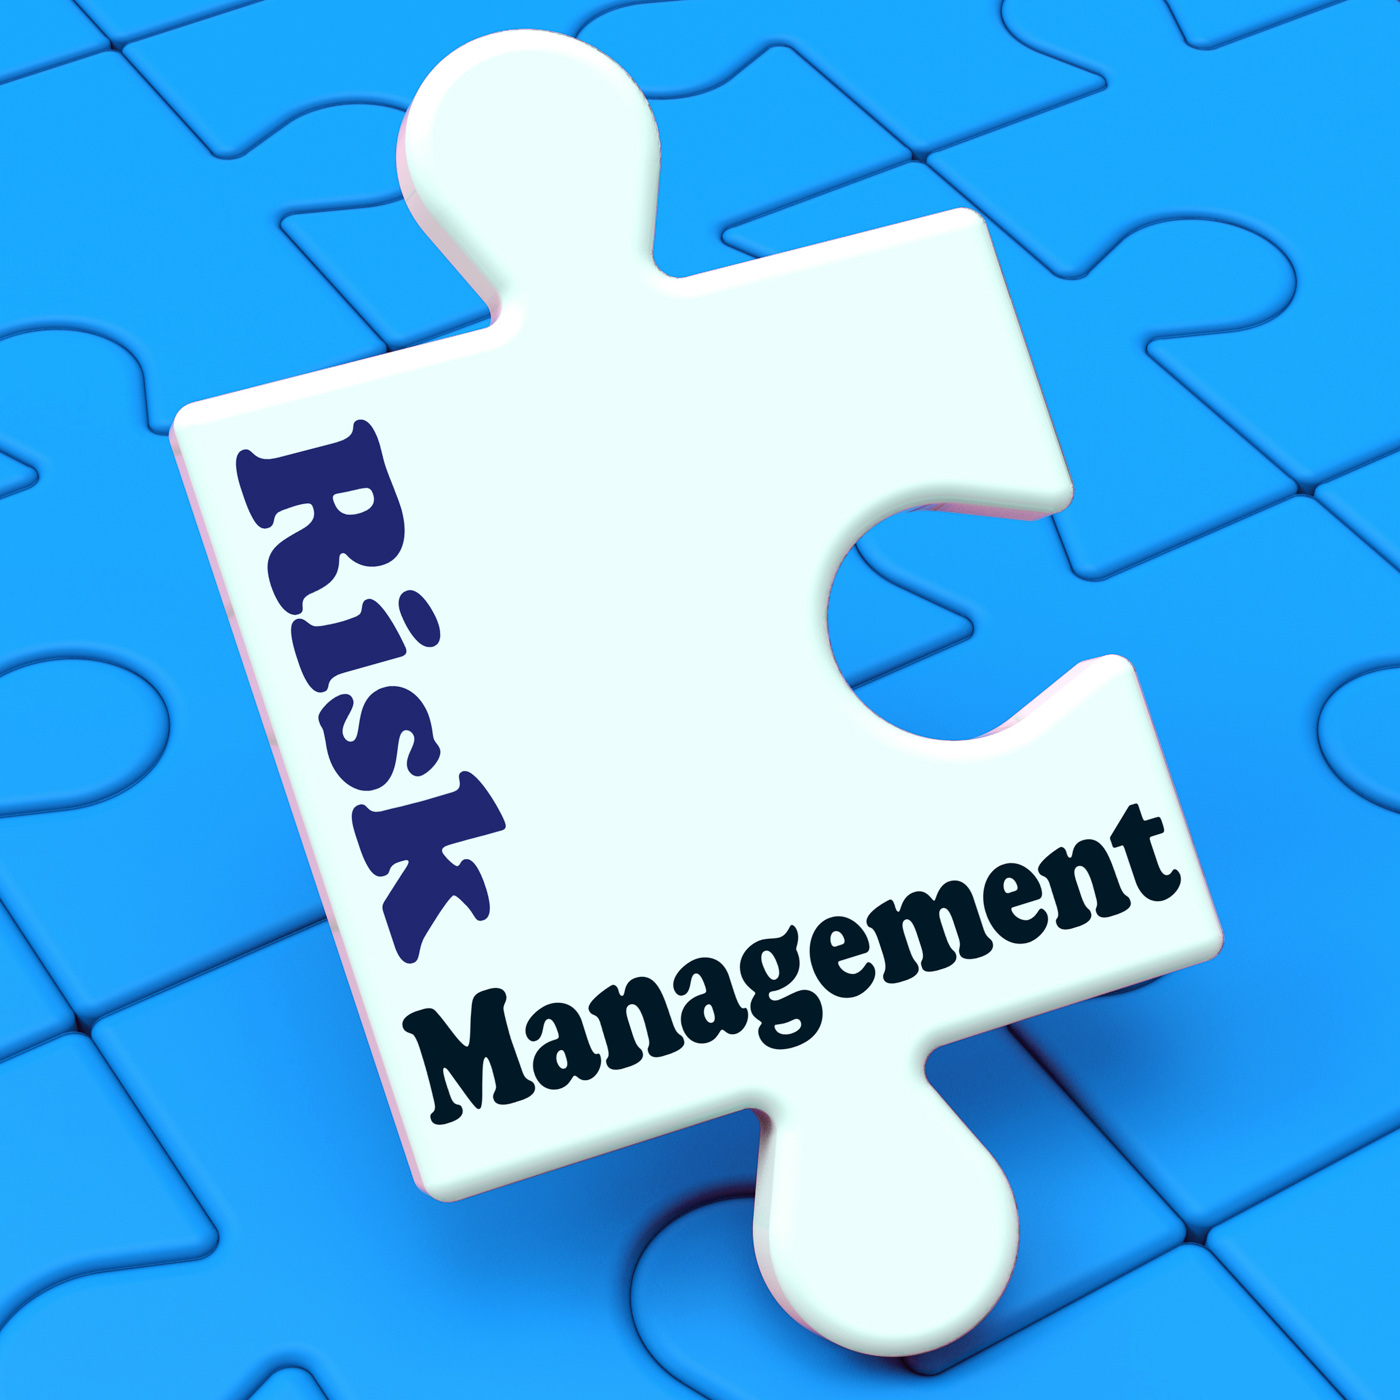 Risk Management Means Analyze Evaluate Avoid Crisis, Financial, Risk, Return, Reduce, HQ Photo